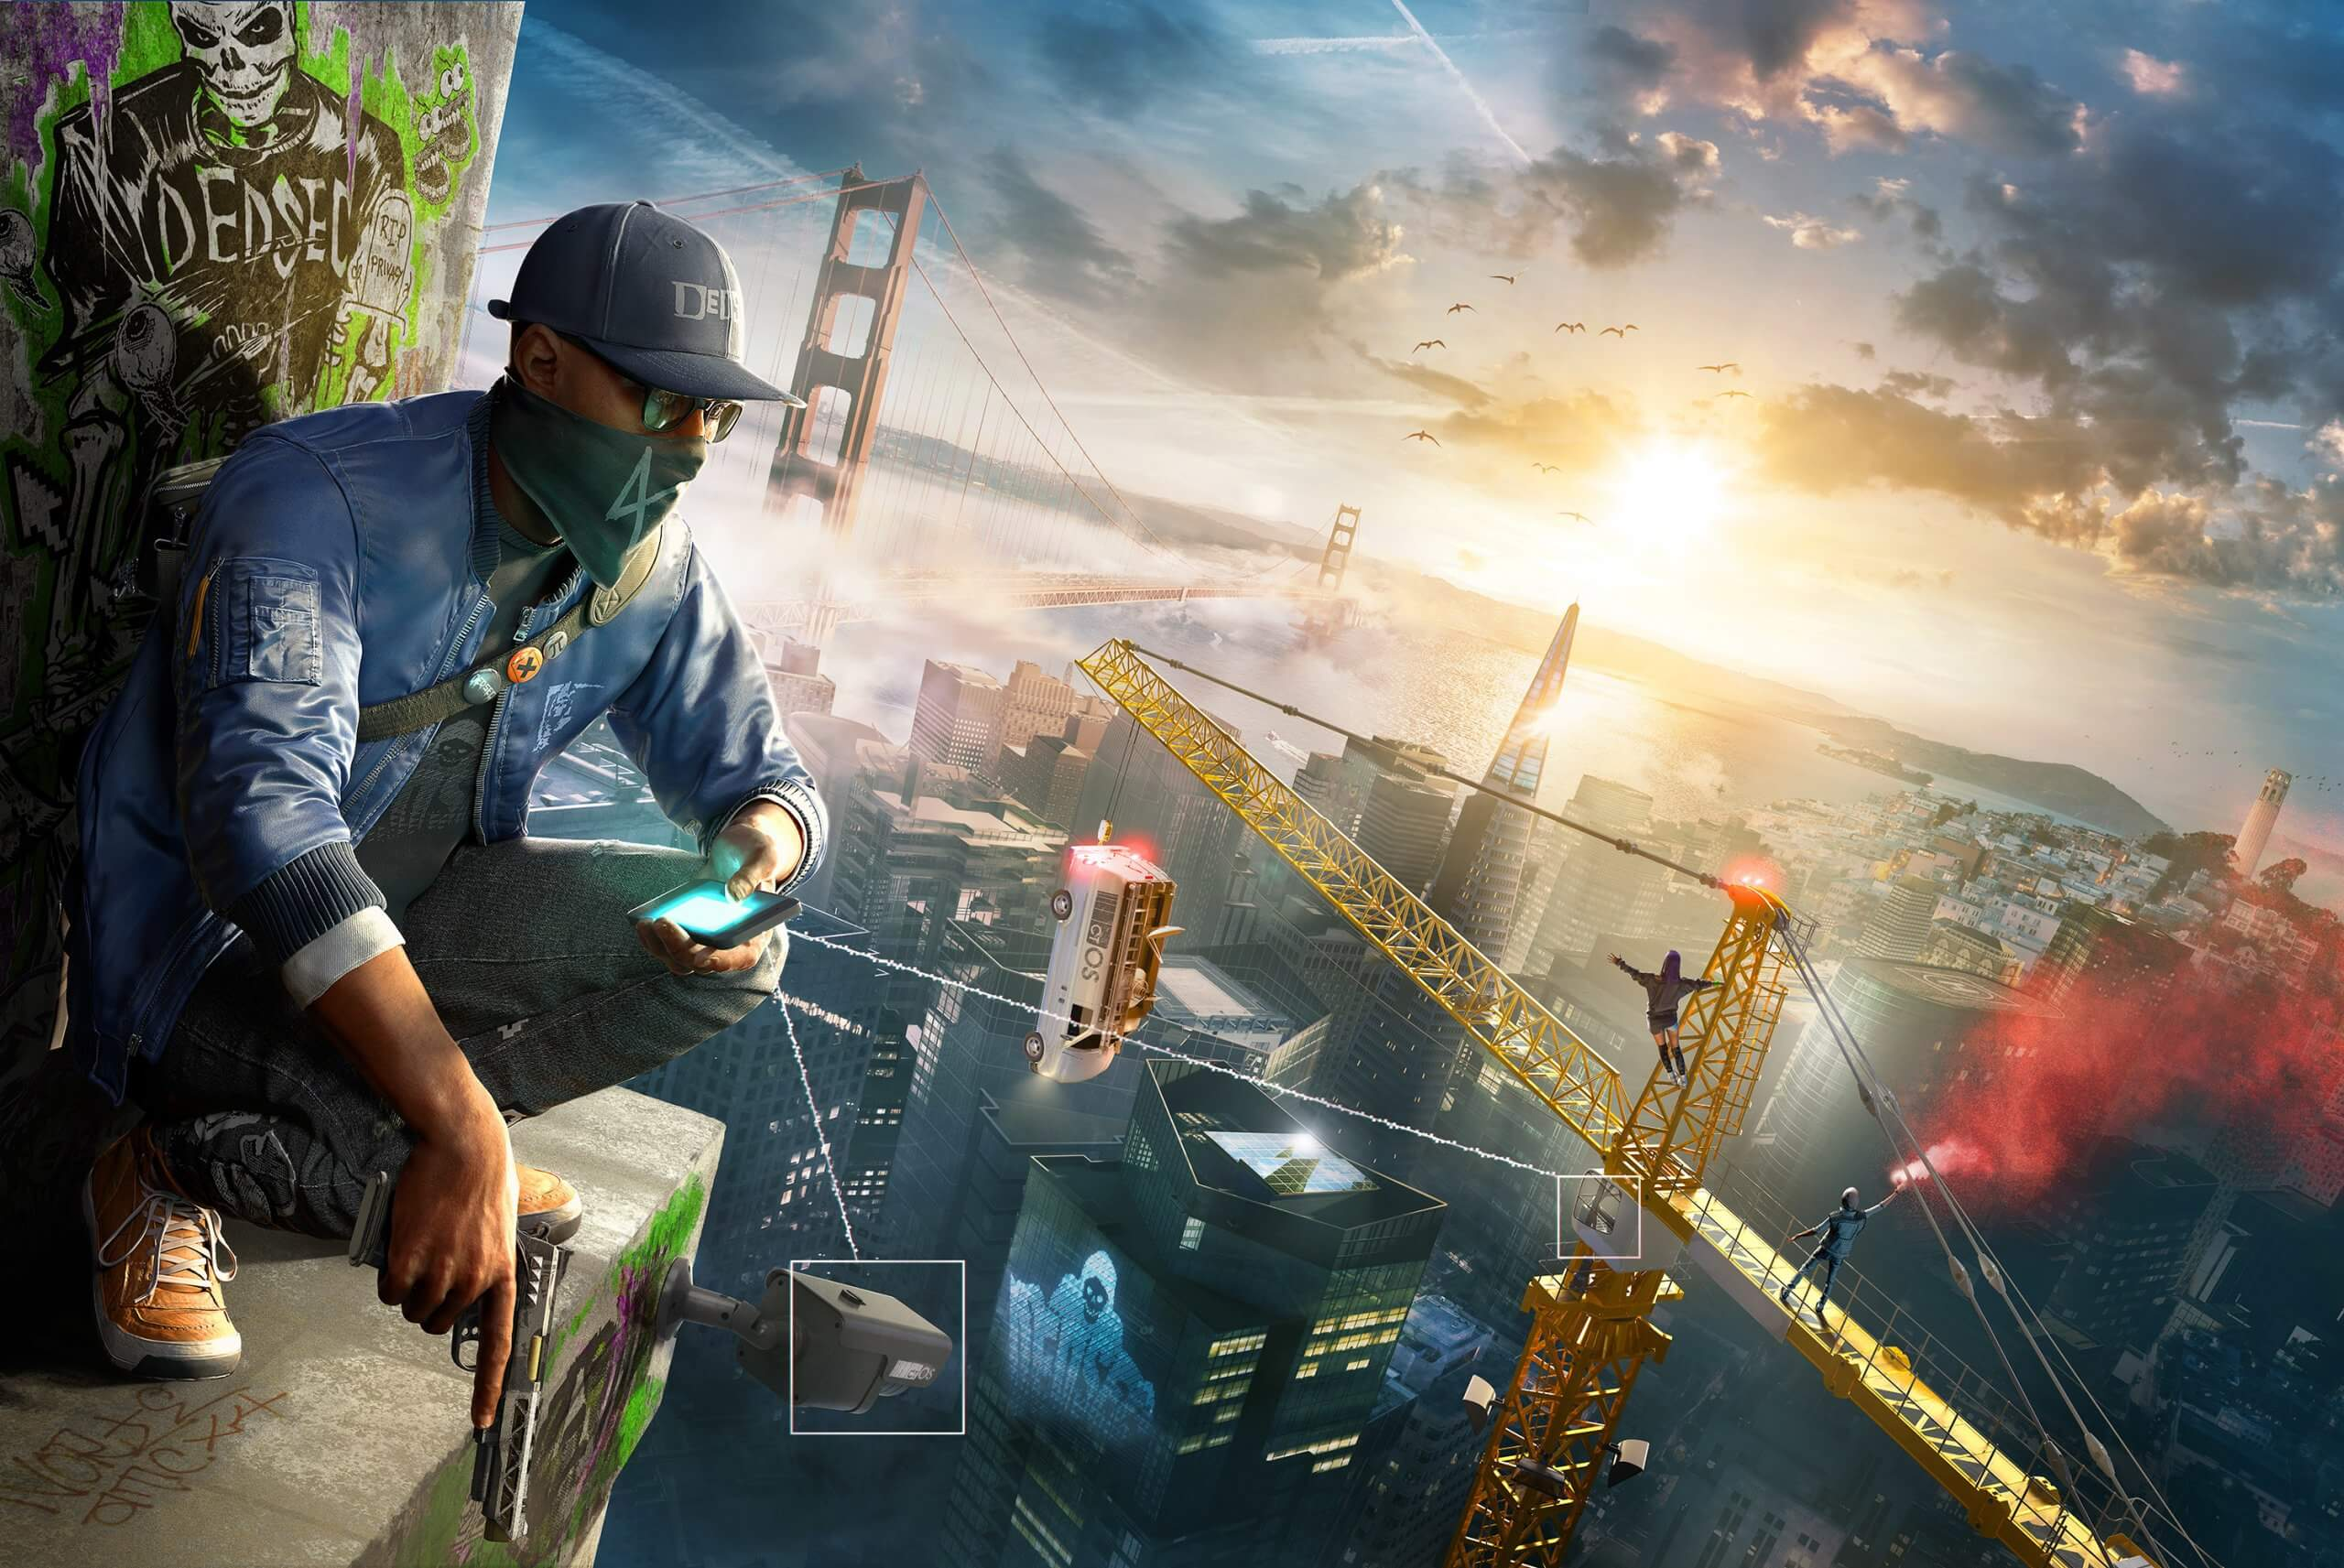 watchdogs2 scaled